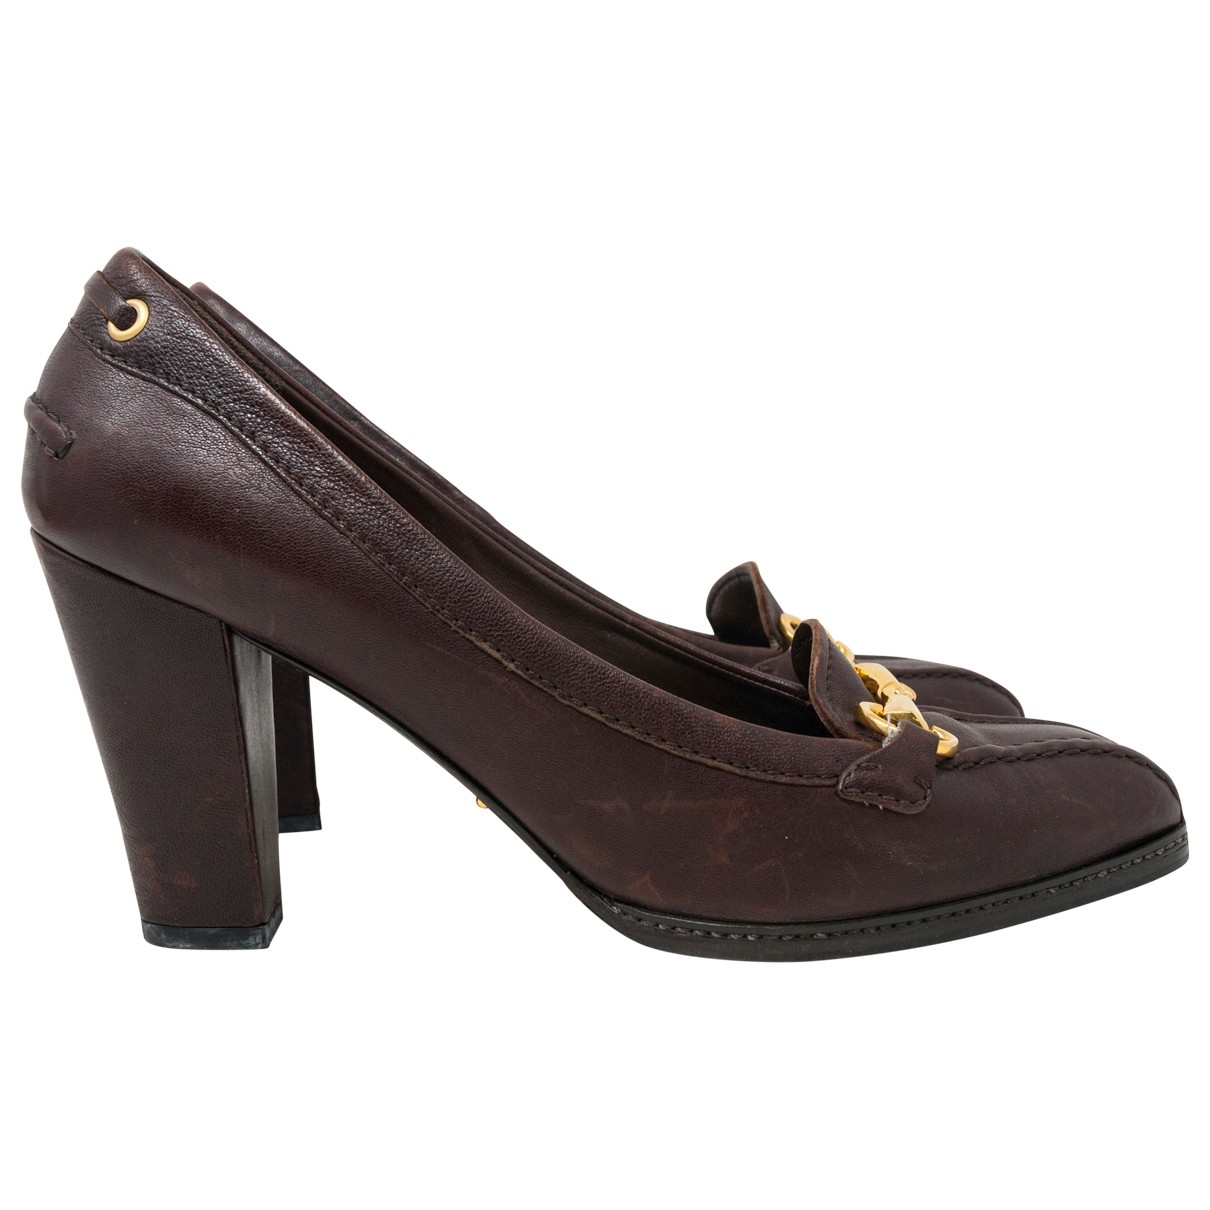 Carshoe \N Brown Leather Heels for Women 40 IT